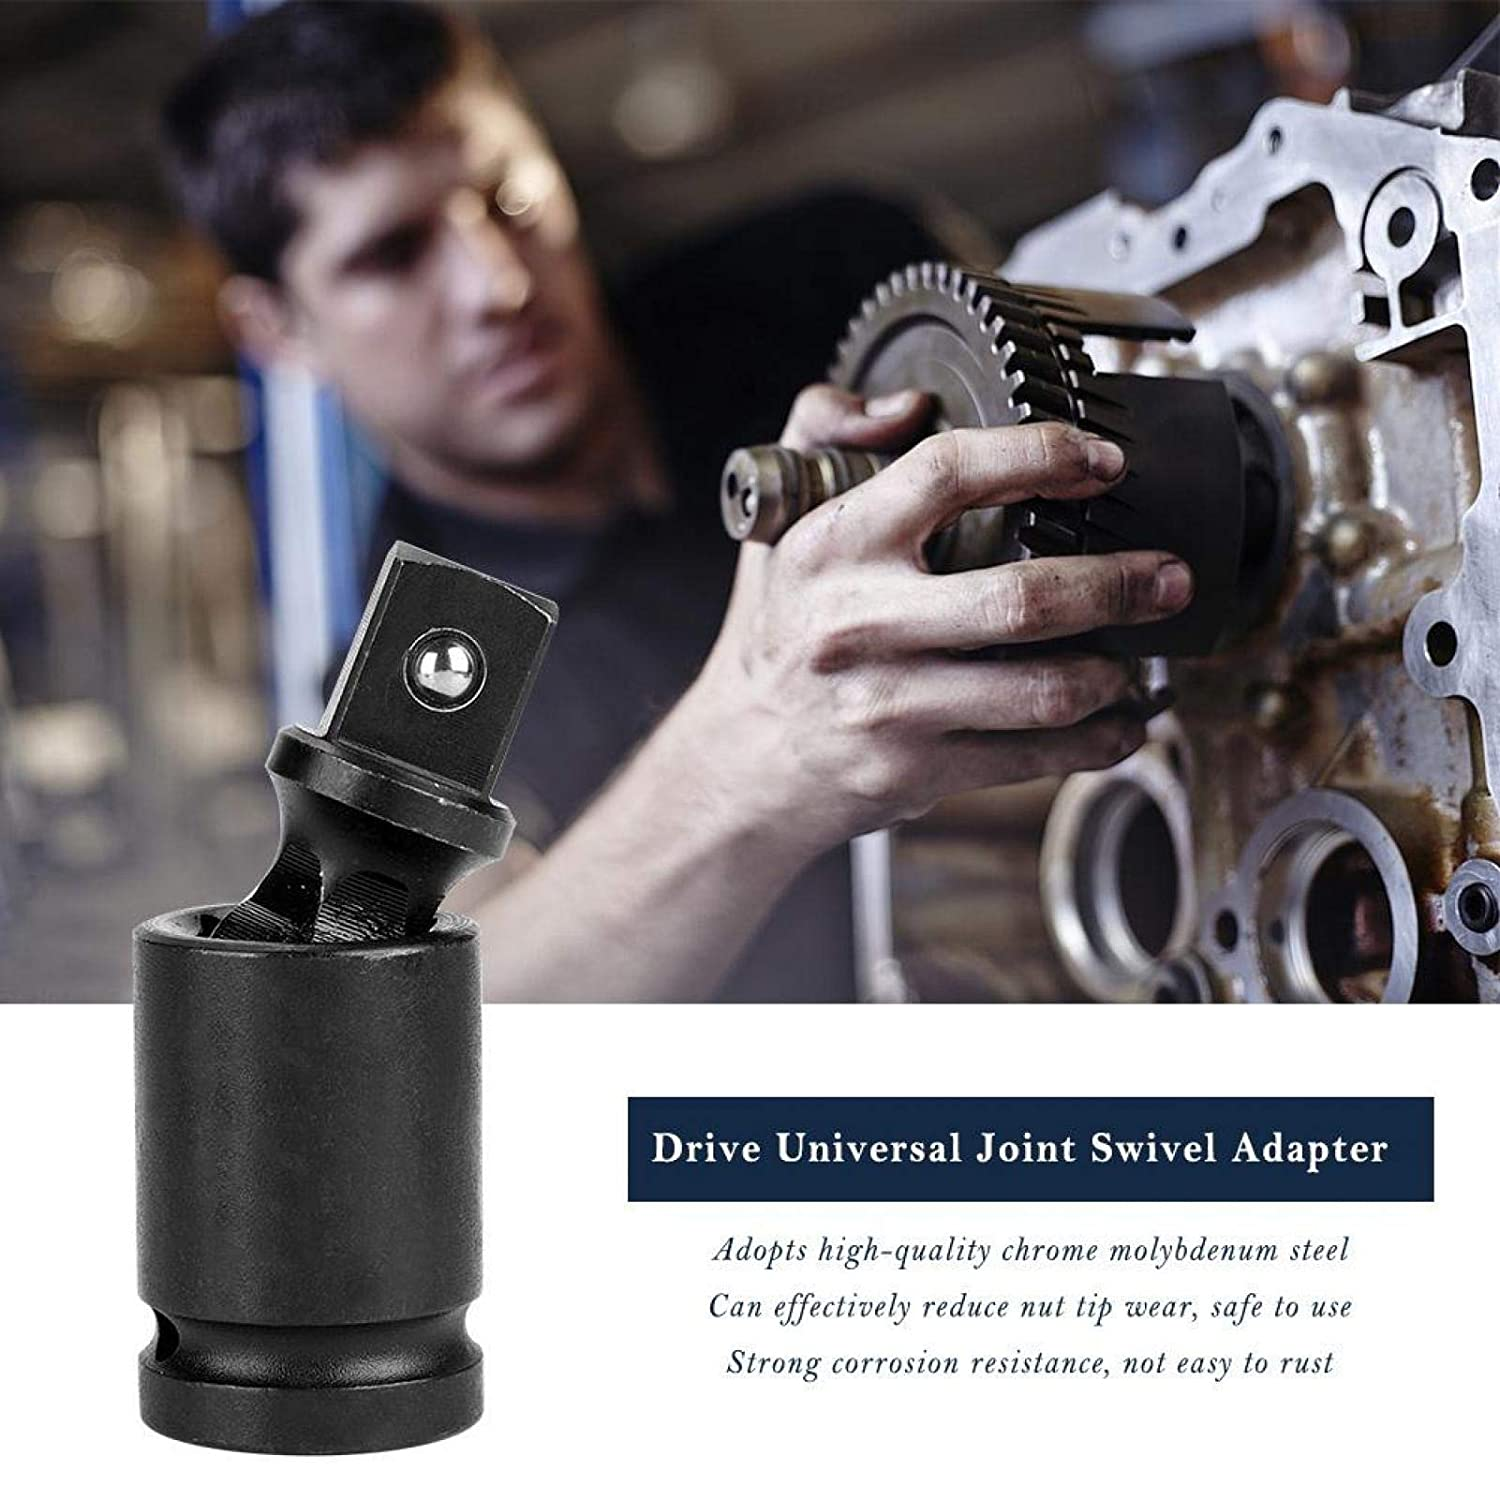 Rotate 360 /° Durable Universal Joint Adapter 3//4 inch Solid Auto Repair for Metallurgy Shipbuilding Mining Universal Joint Swivel